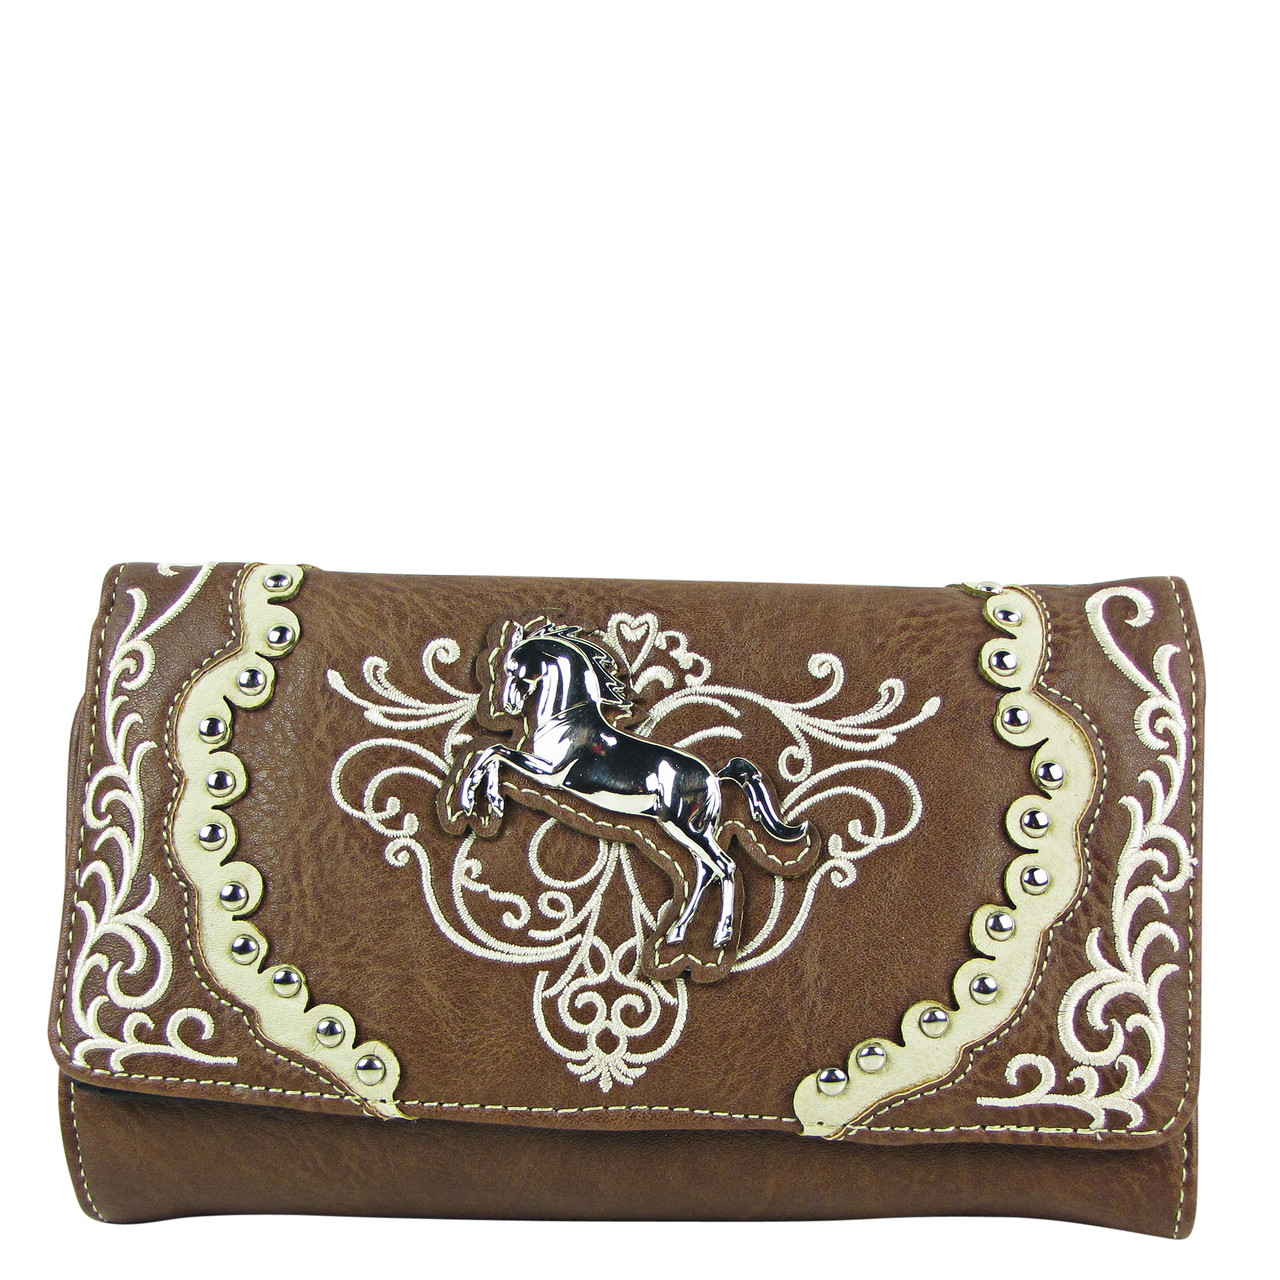 BROWN WESTERN STITCH METAL HORSE LOOK CLUTCH TRIFOLD WALLET CW1-1289BRN